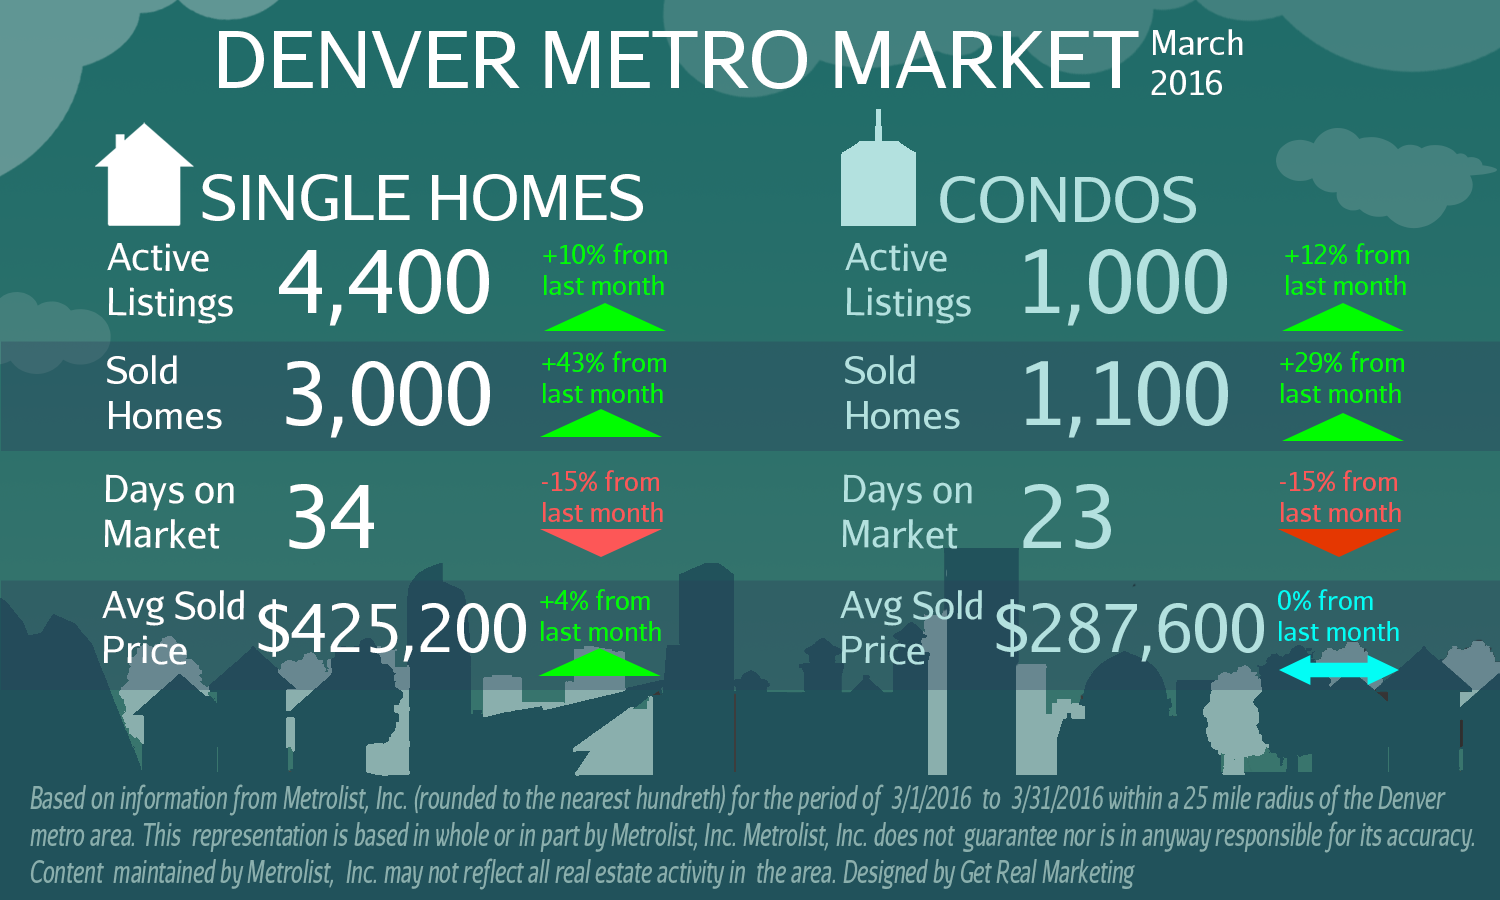 Sold Homes ROCKET In March!